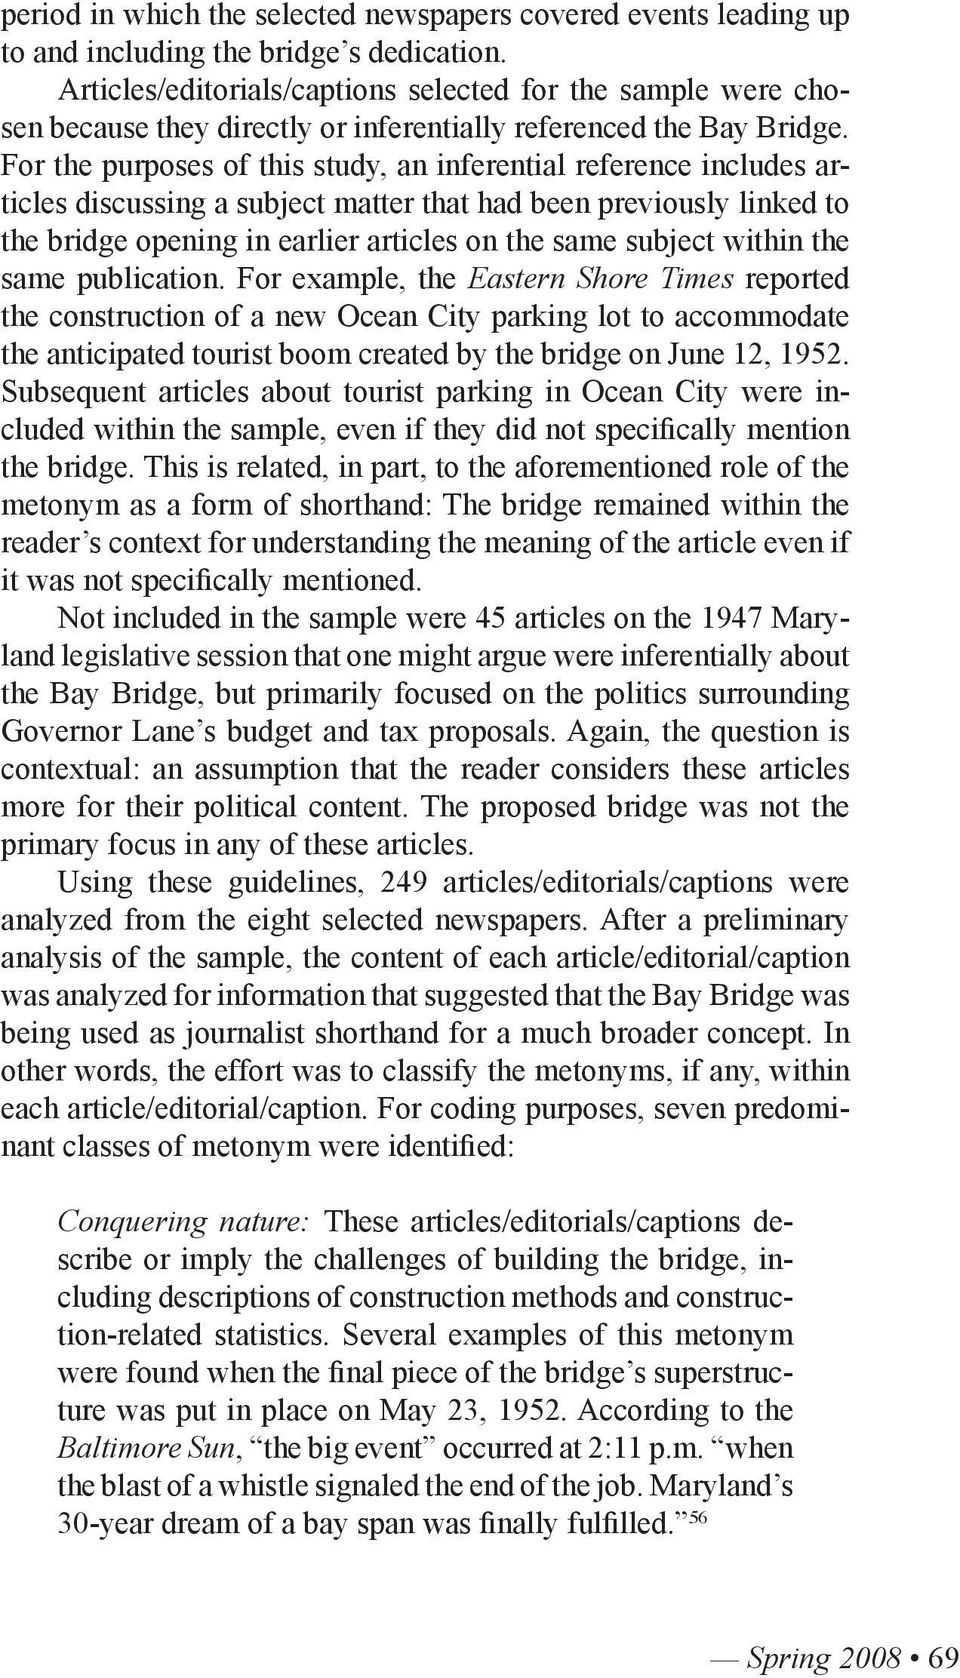 For the purposes of this study, an inferential reference includes articles discussing a subject matter that had been previously linked to the bridge opening in earlier articles on the same subject